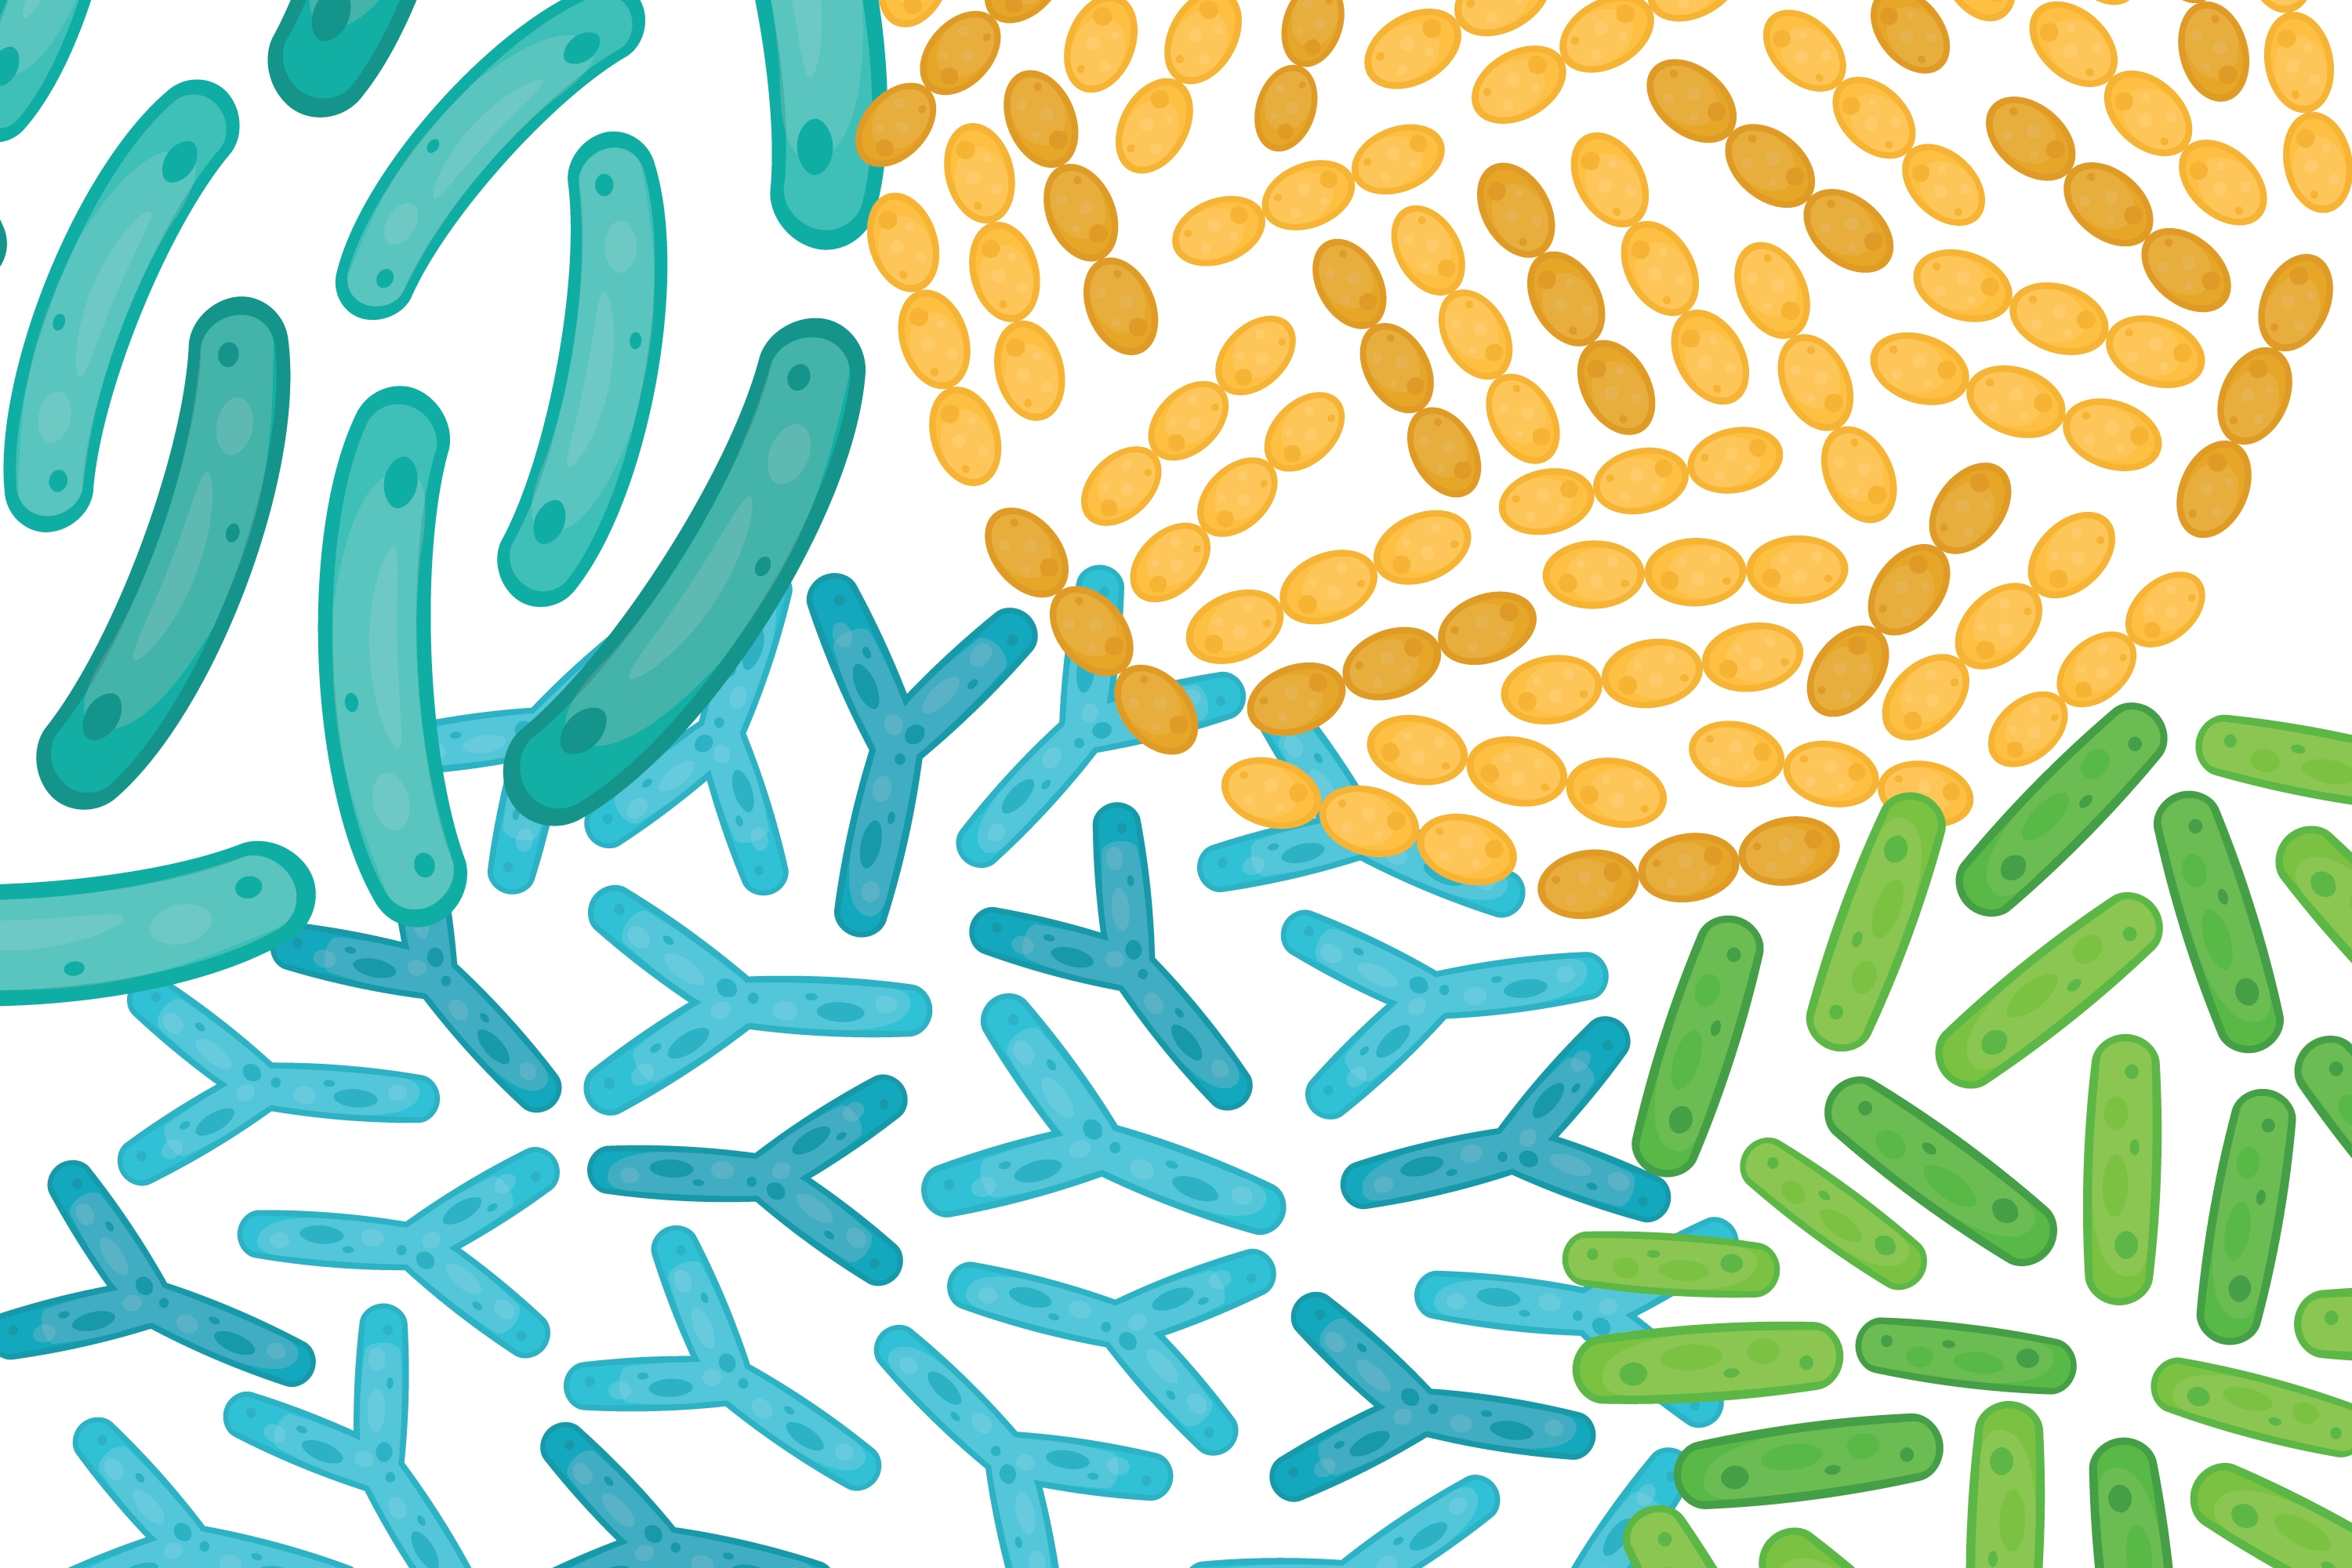 Illustration of probiotics at a cellular level.